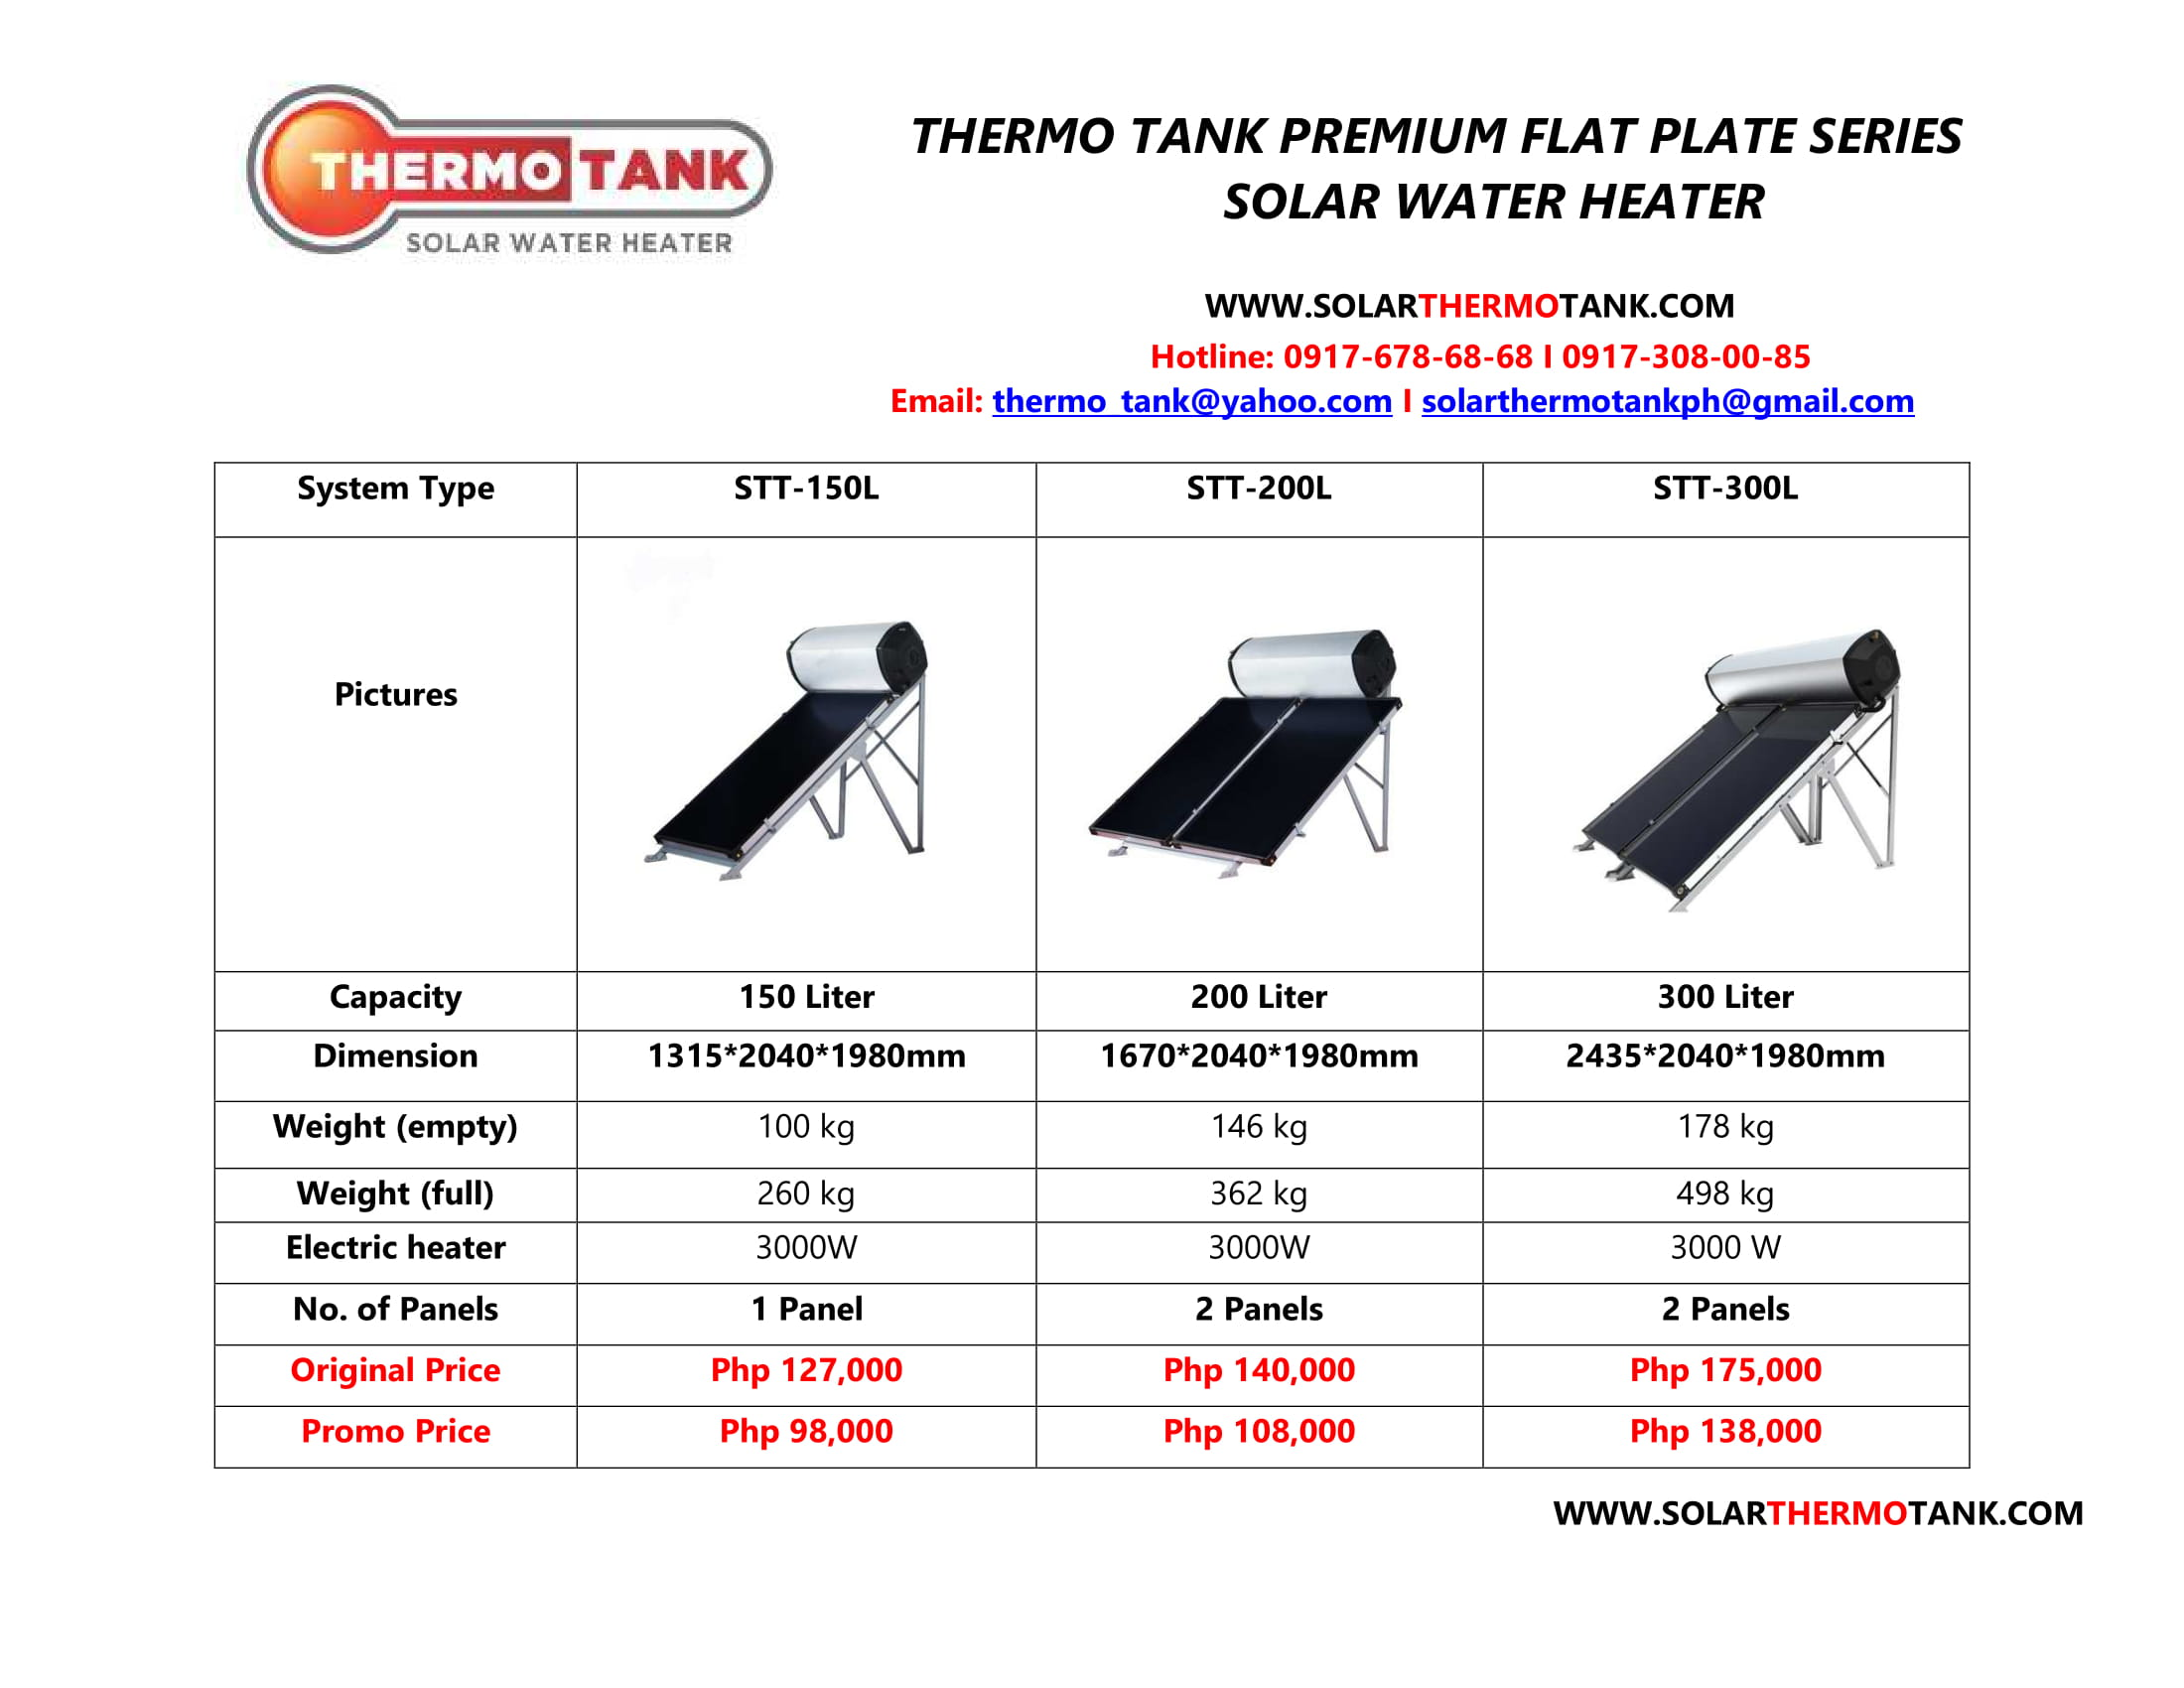 Thermo Tank Flat Plate SRP vs Promo